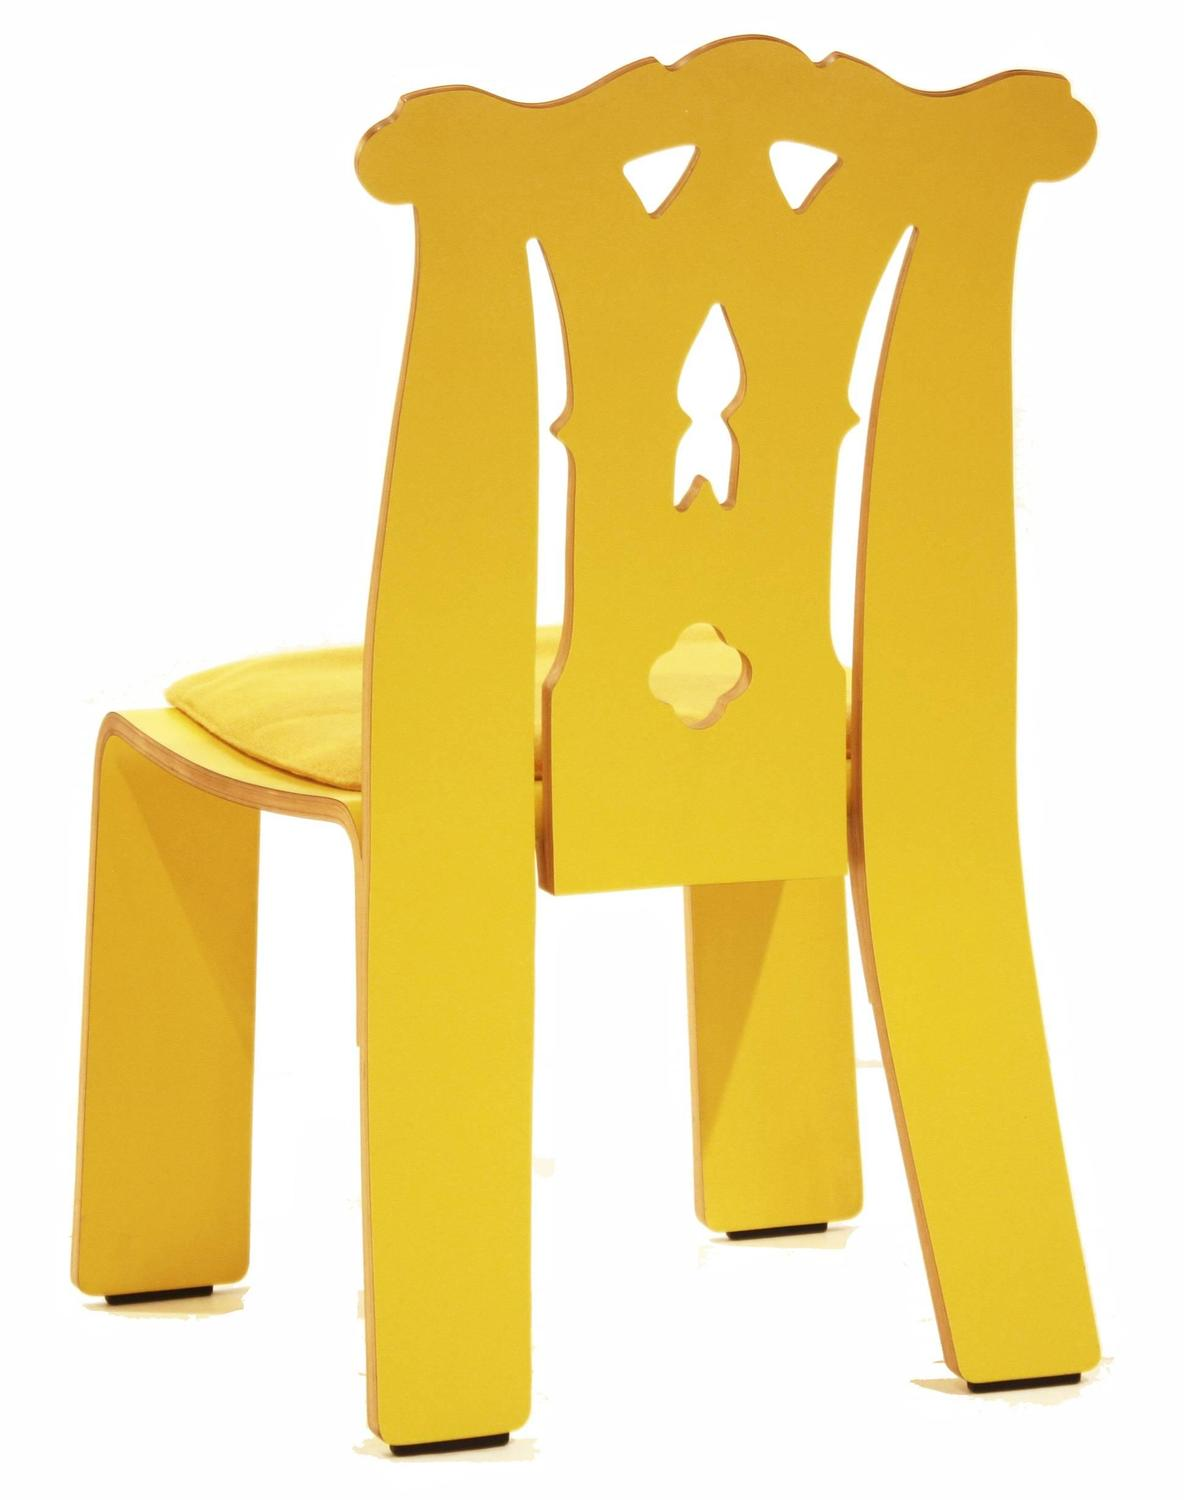 Robert Venturi S Quot Chippendale Quot Chair By Knoll For Sale At